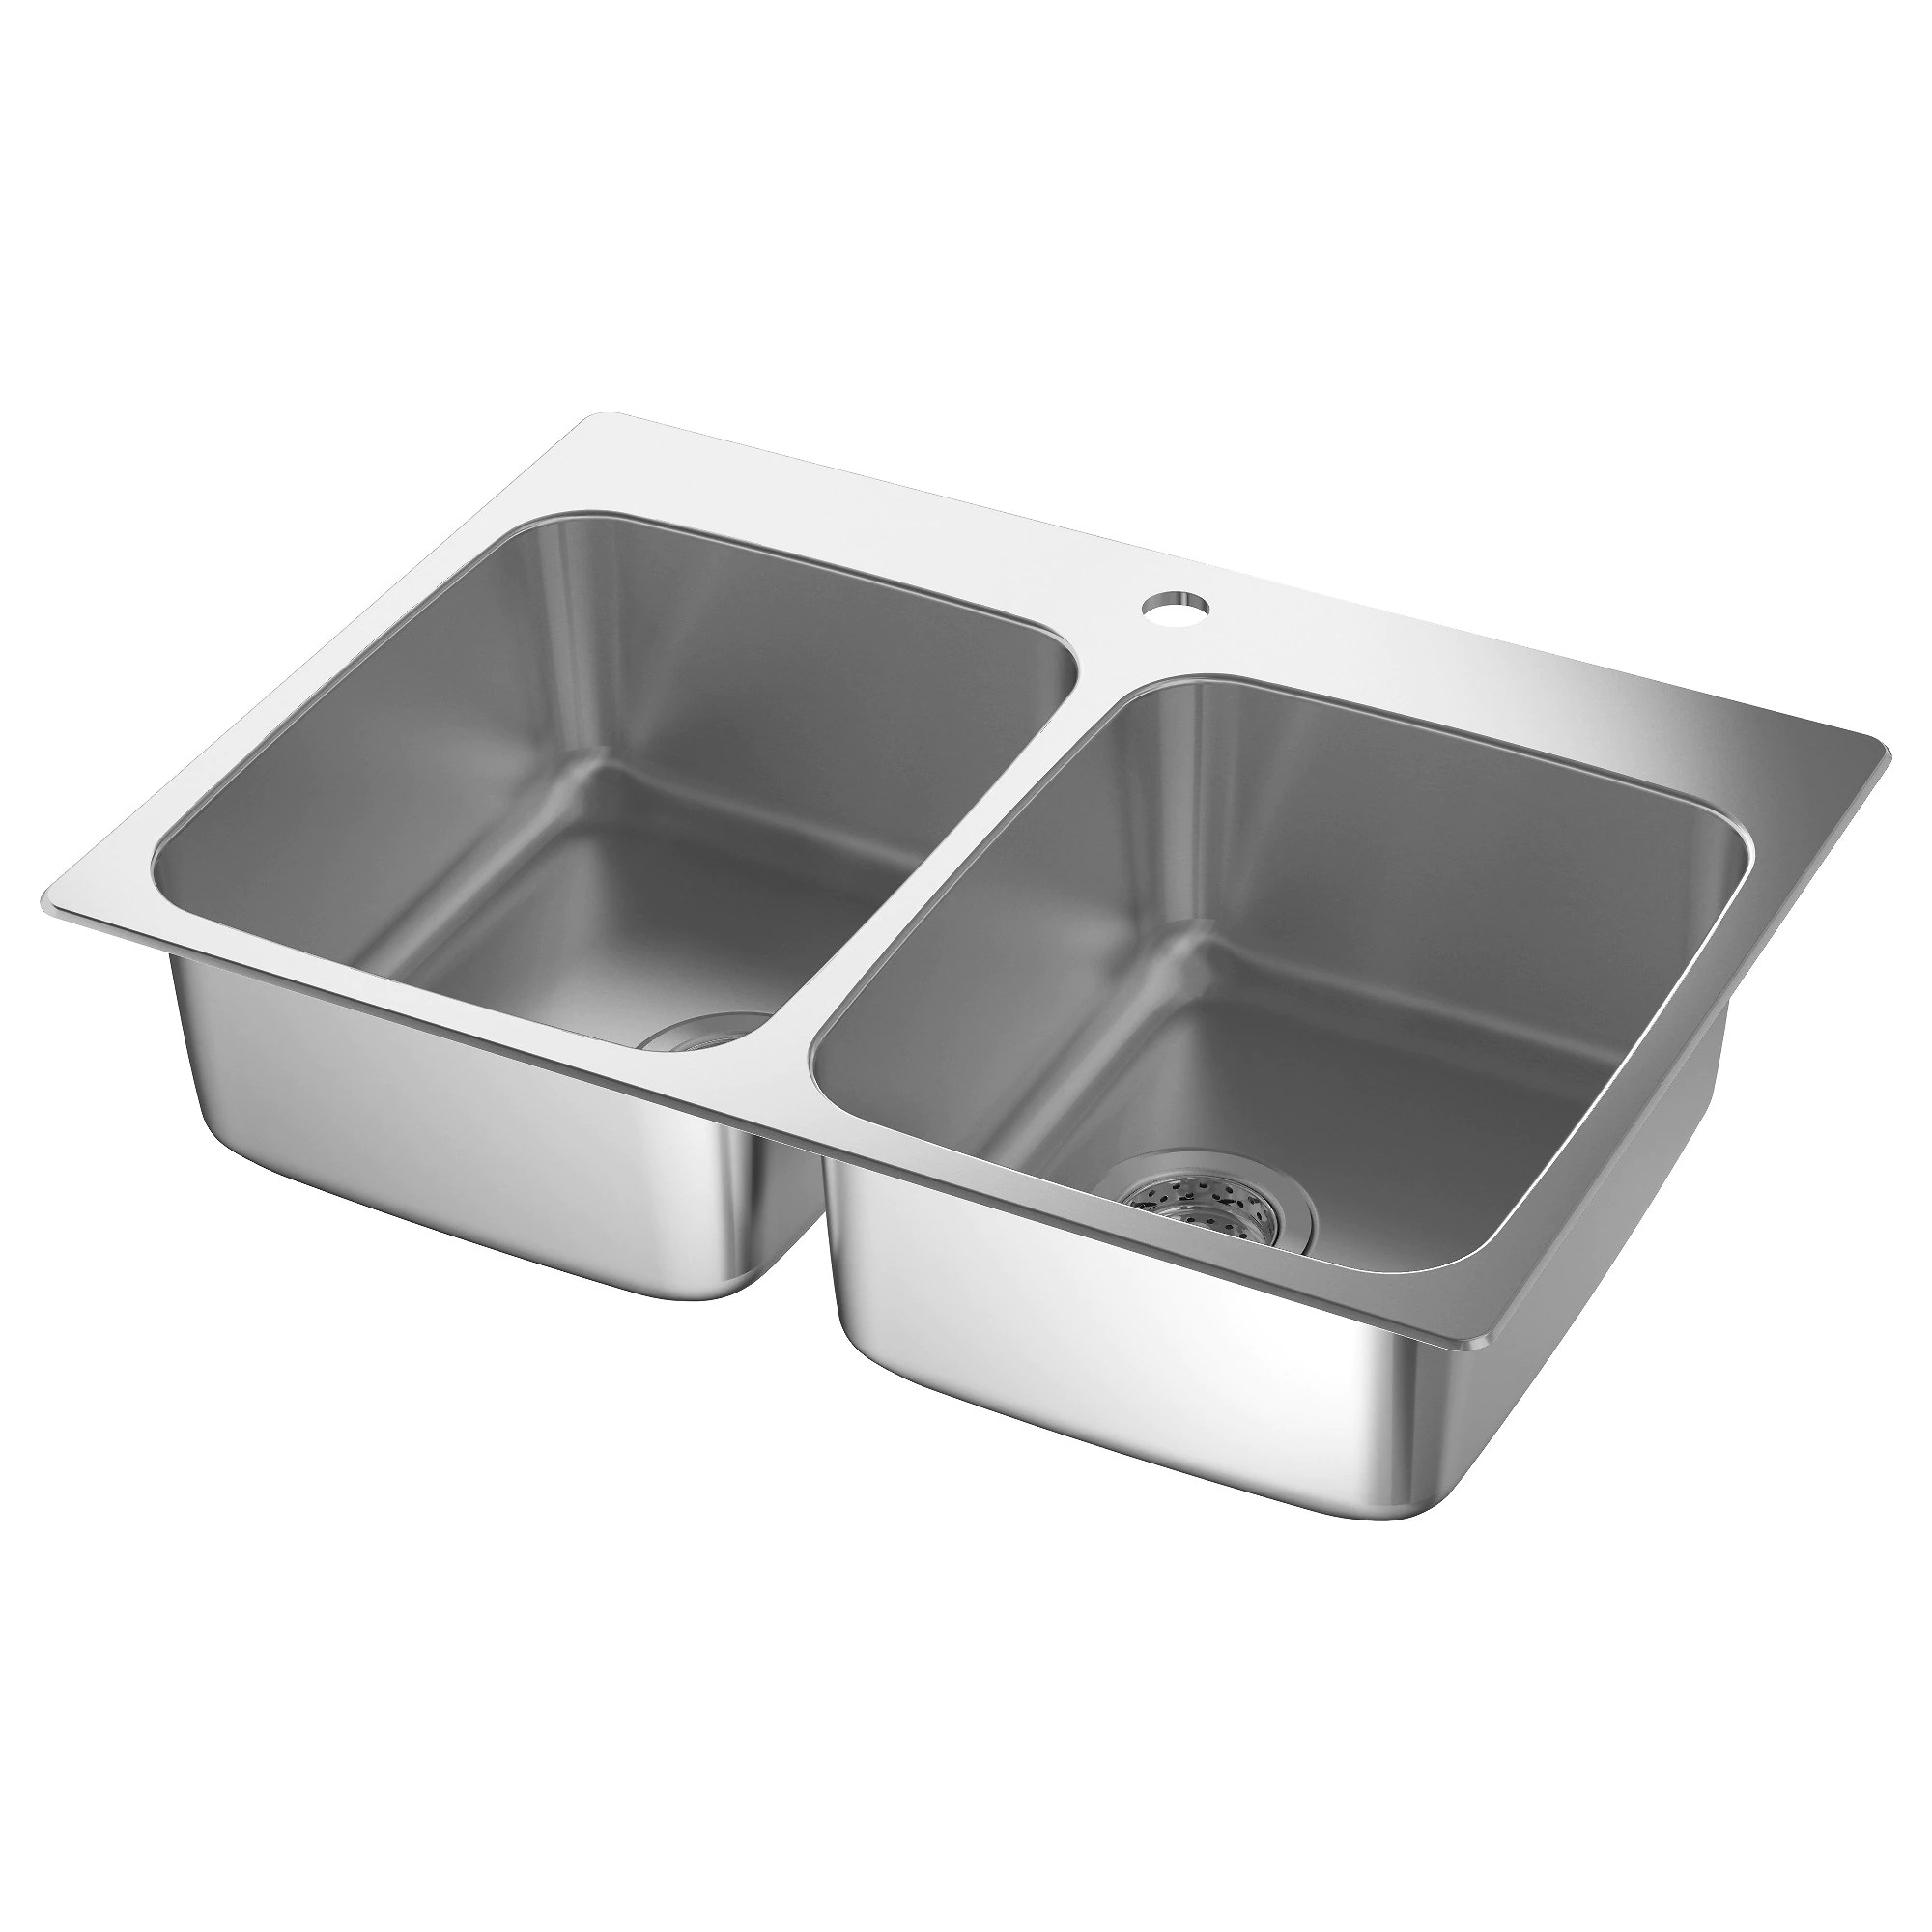 S kitchen sink sizes Inter IKEA Systems B V Privacy Policy